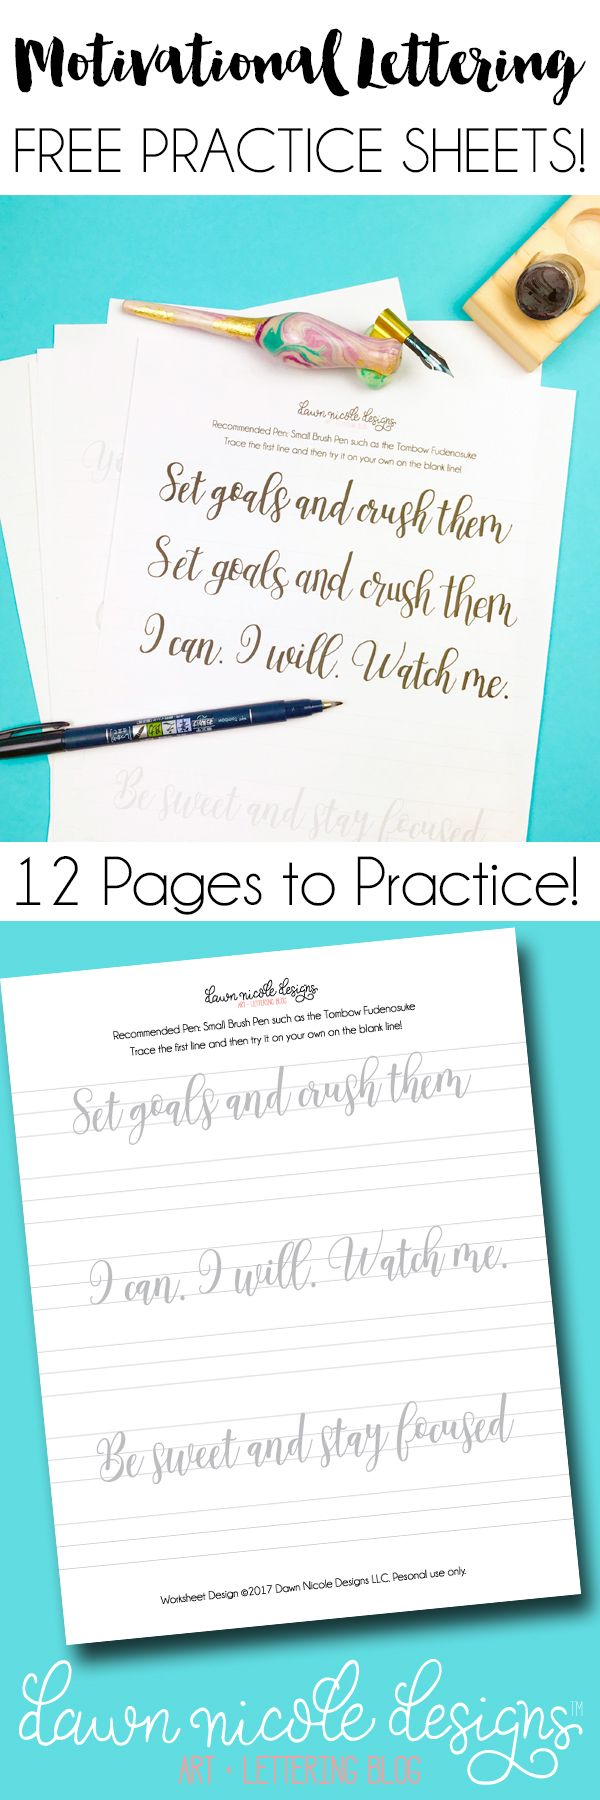 Earth Tilt Seasons Worksheet Pdf Free Printable Brush Lettering Practice Sheets  Free Printable  Science Free Worksheets Excel with Adverbs And Adverbial Phrases Worksheets Pdf Motivational Free Calligraphy Practice Sheets Creative Letteringbrush  Letteringhand Letteringhandwriting  Math Worksheets Powers And Exponents Word